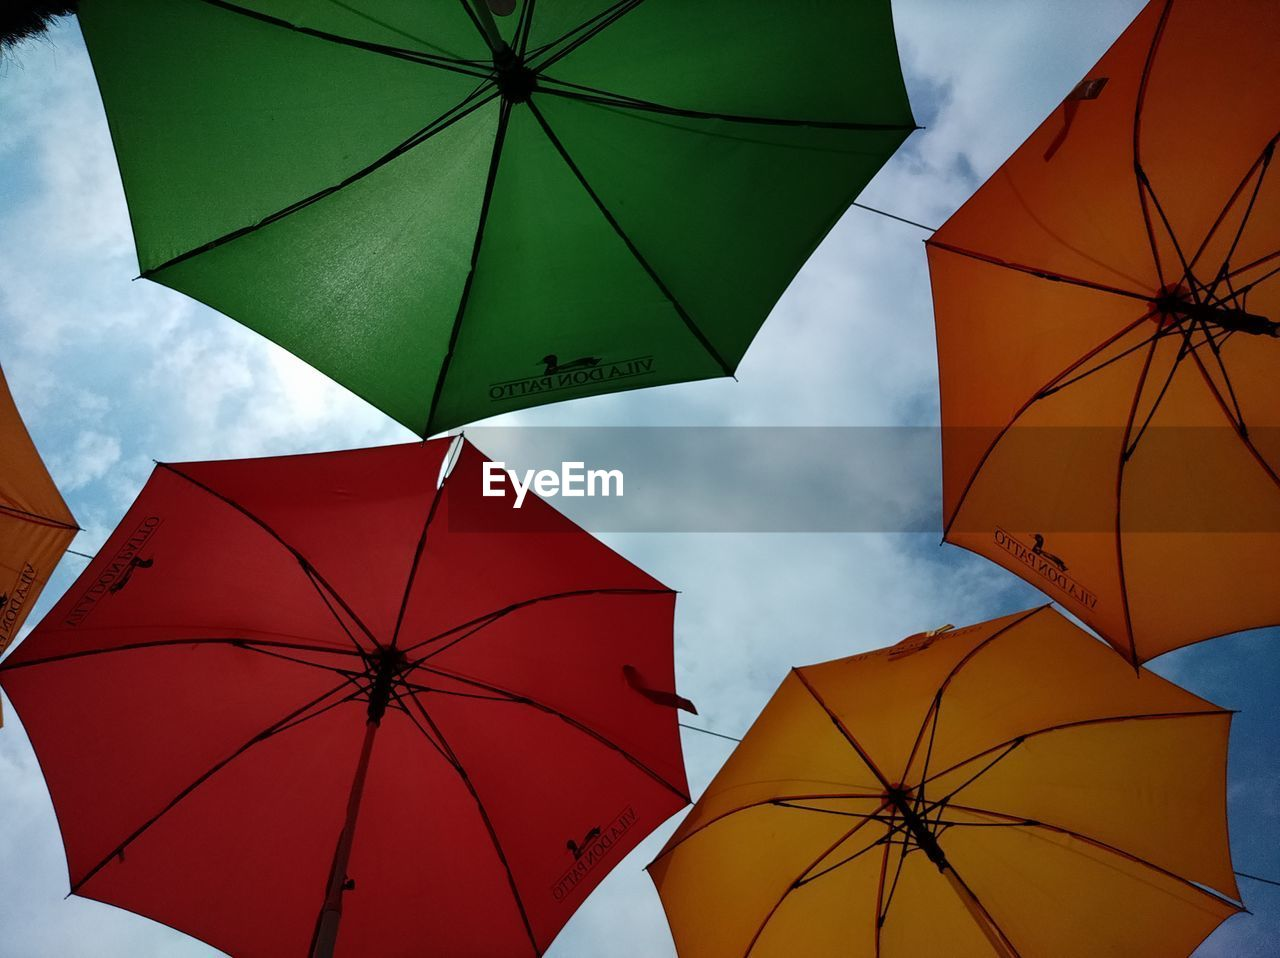 LOW ANGLE VIEW OF UMBRELLA AGAINST SKY DURING RAINY SEASON